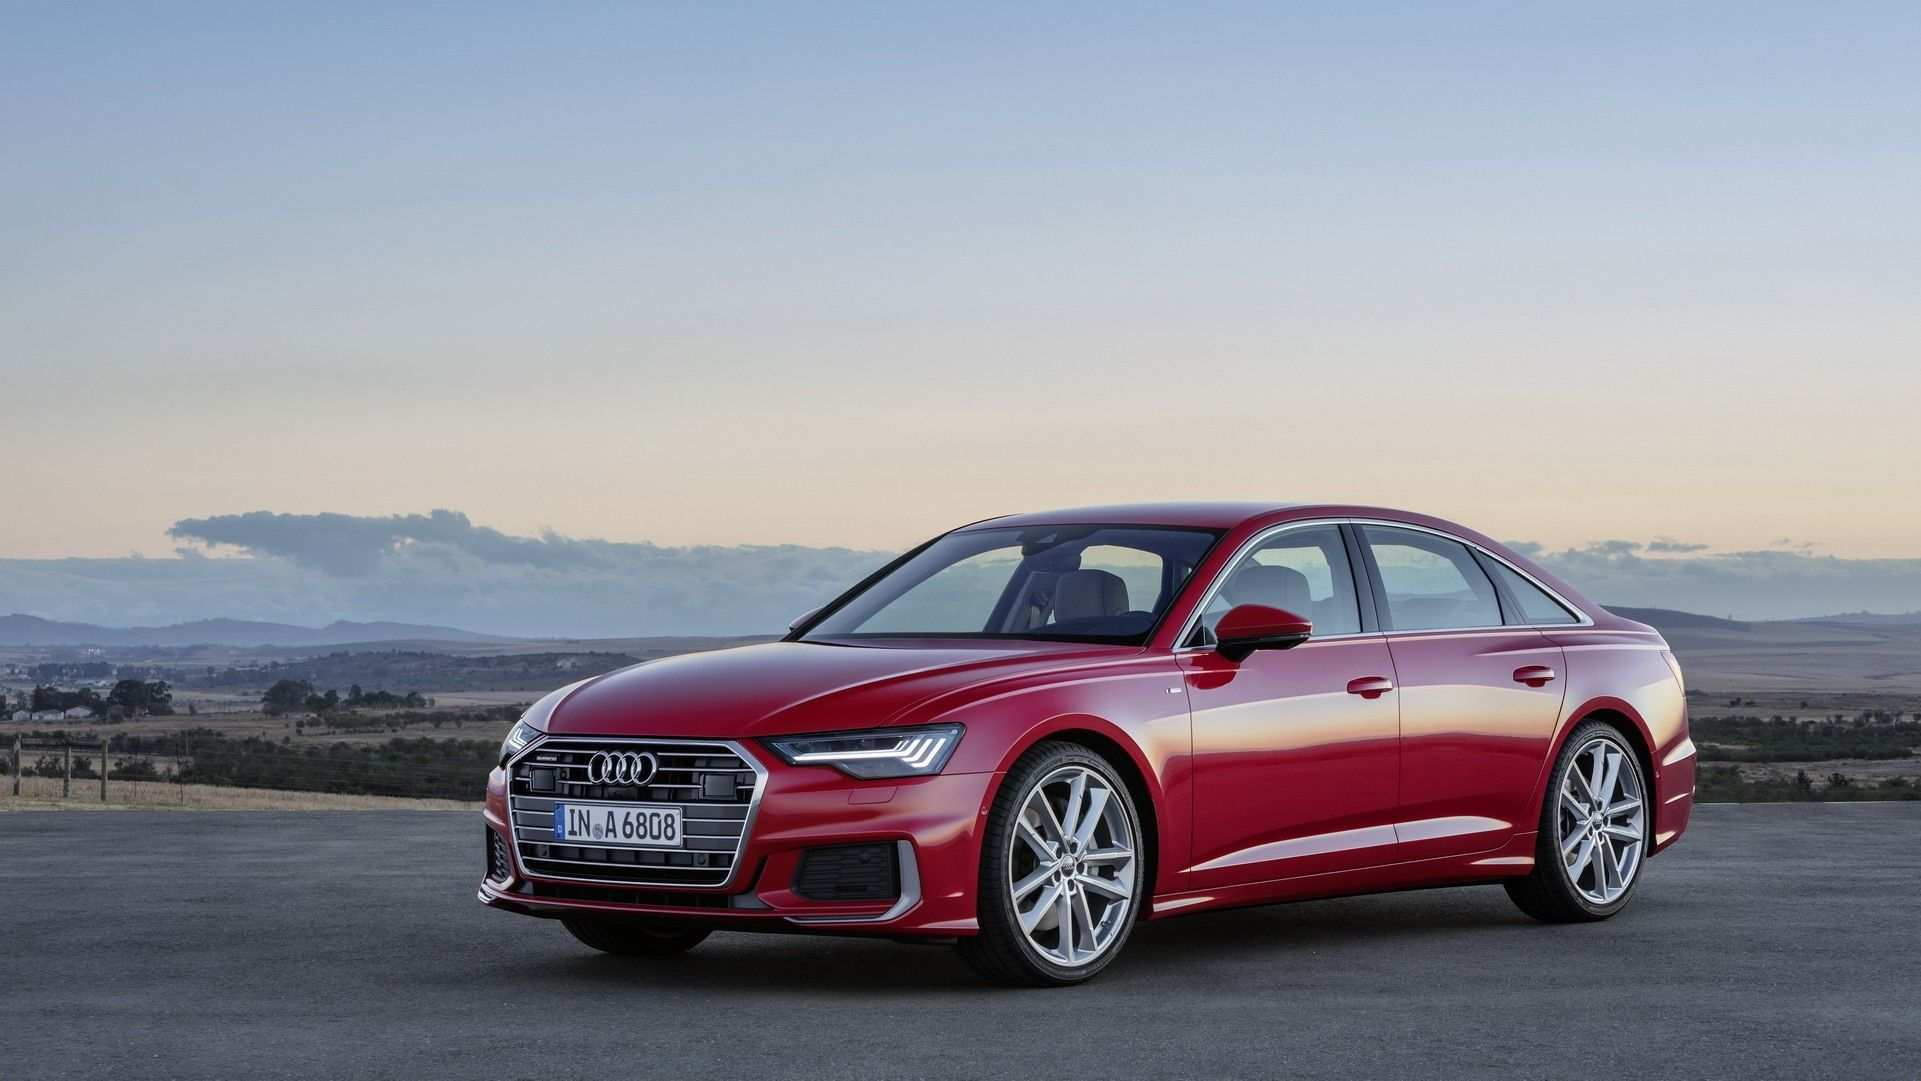 60 Concept of Review Audi 2019 A6 New Interior New Review by Review Audi 2019 A6 New Interior